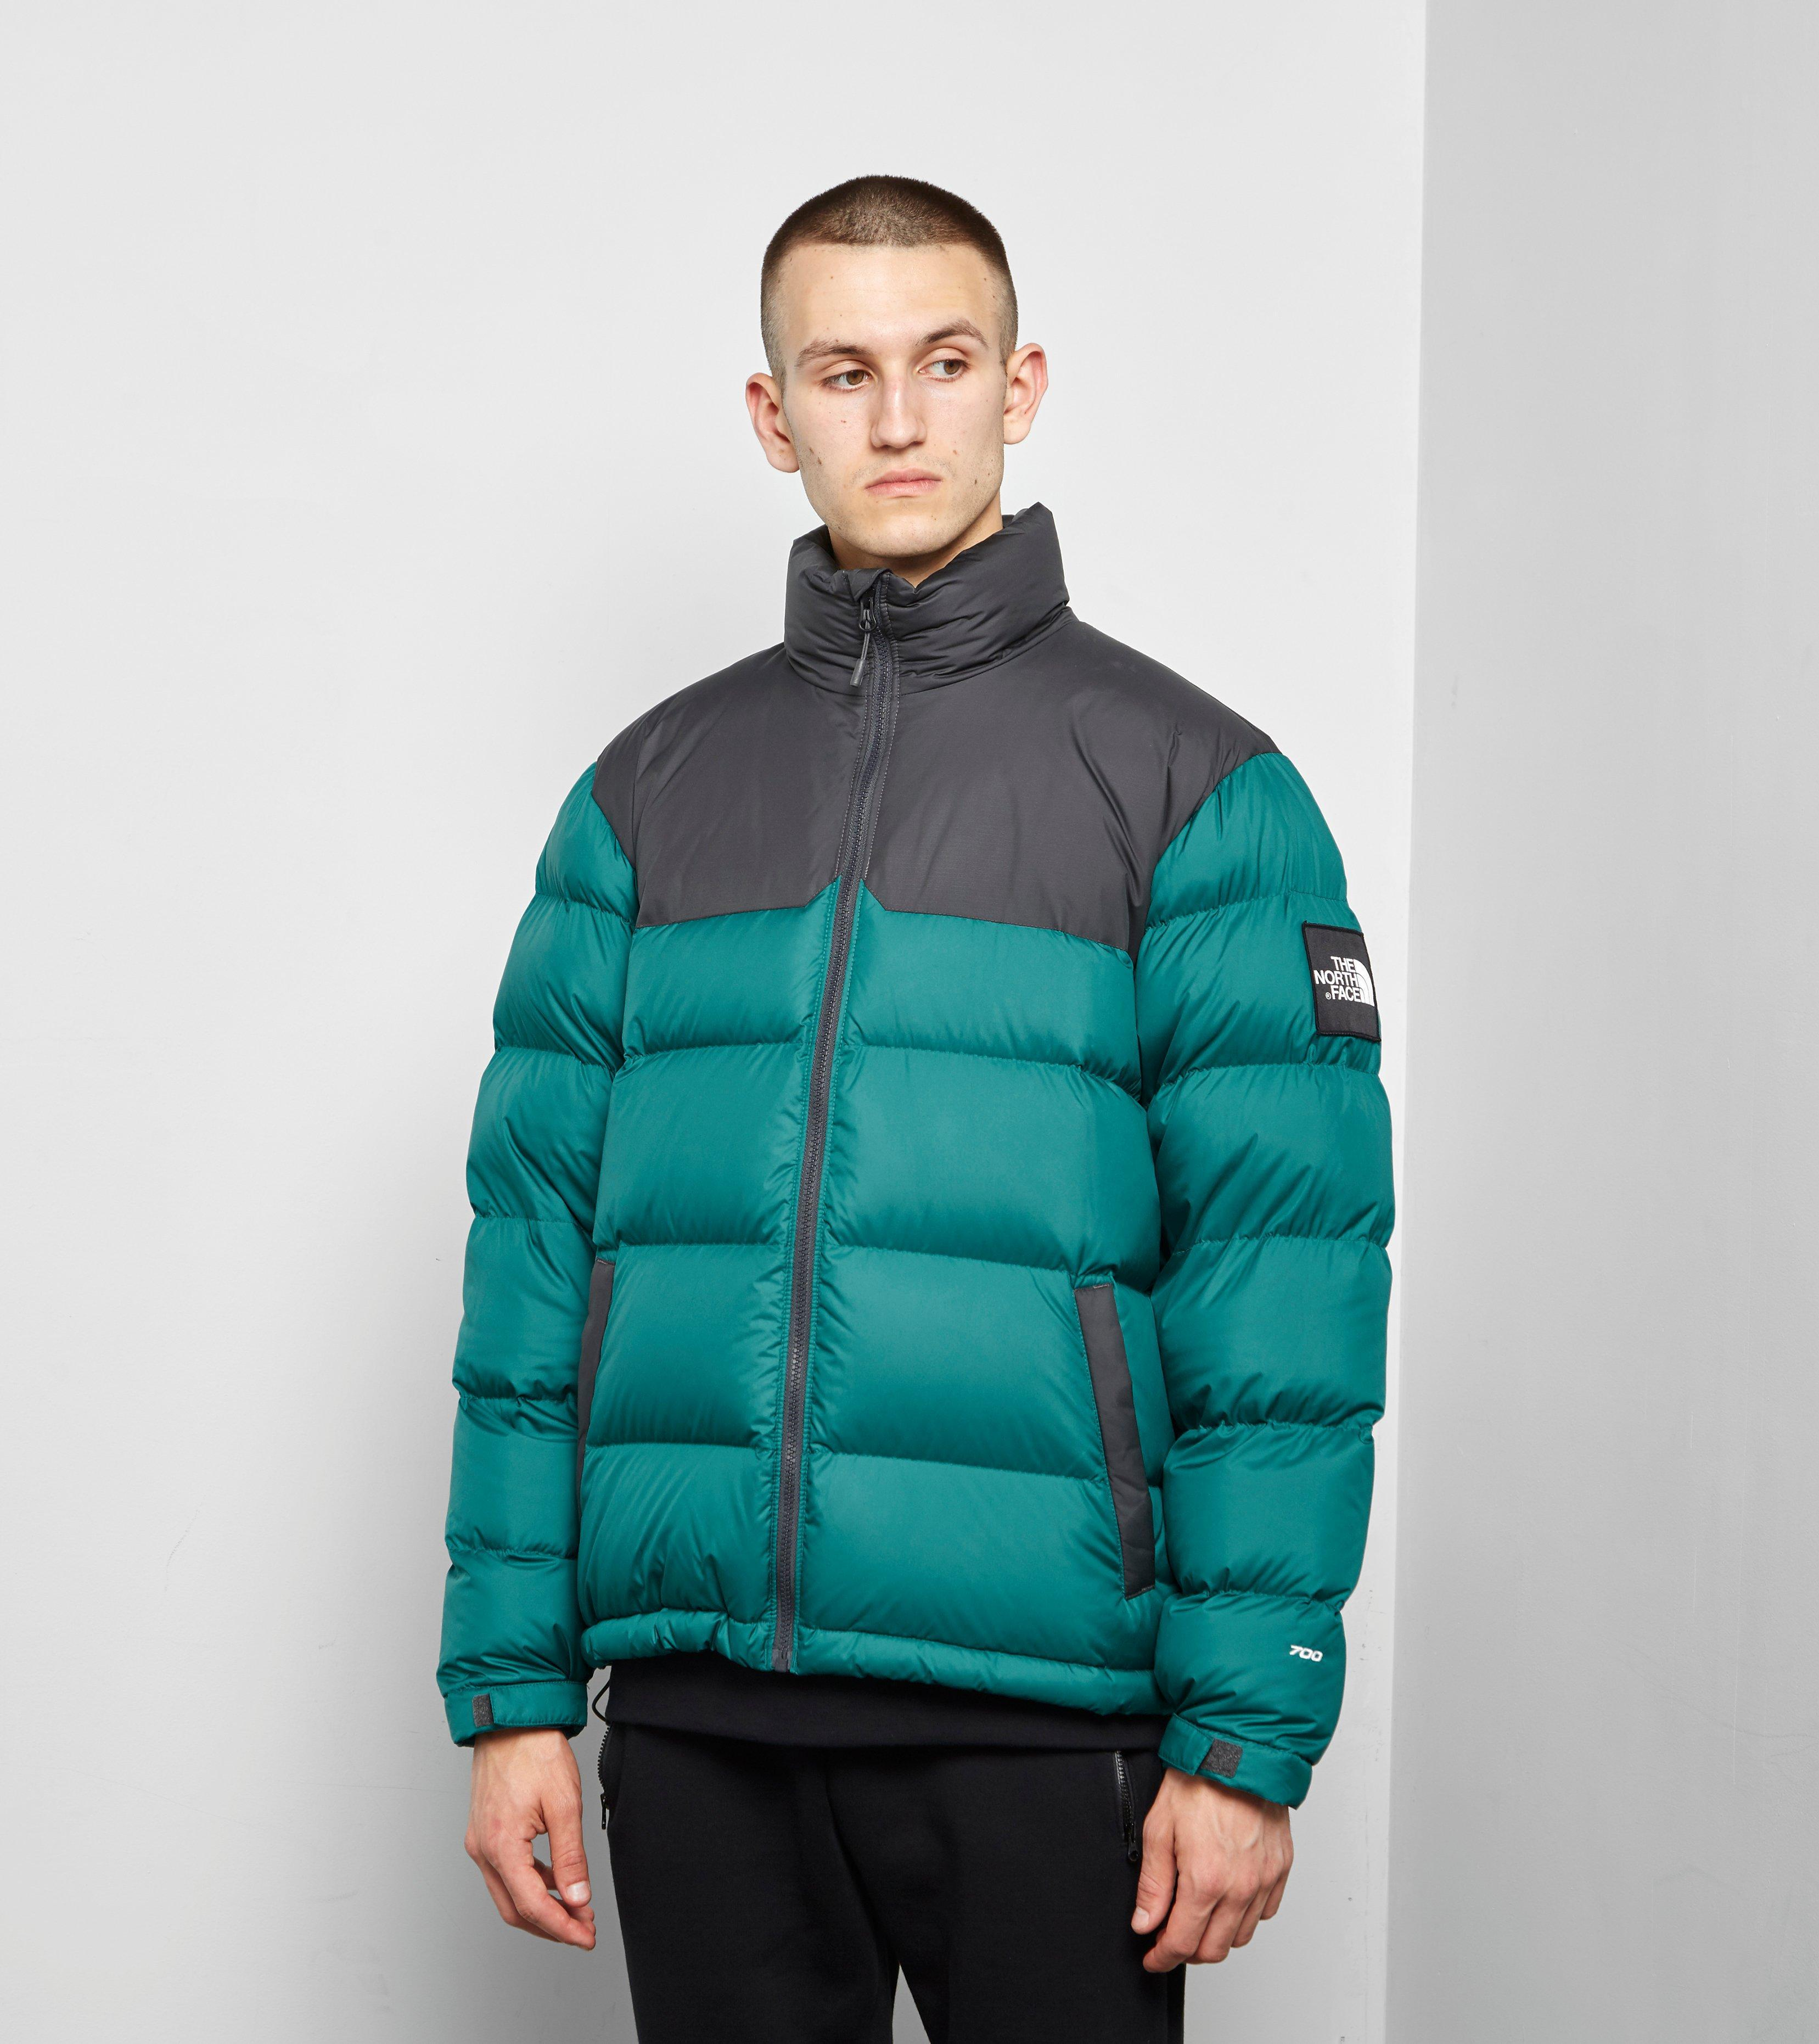 Lyst - The North Face 1992 Nuptse Jacket in Green for Men fa15b7c16